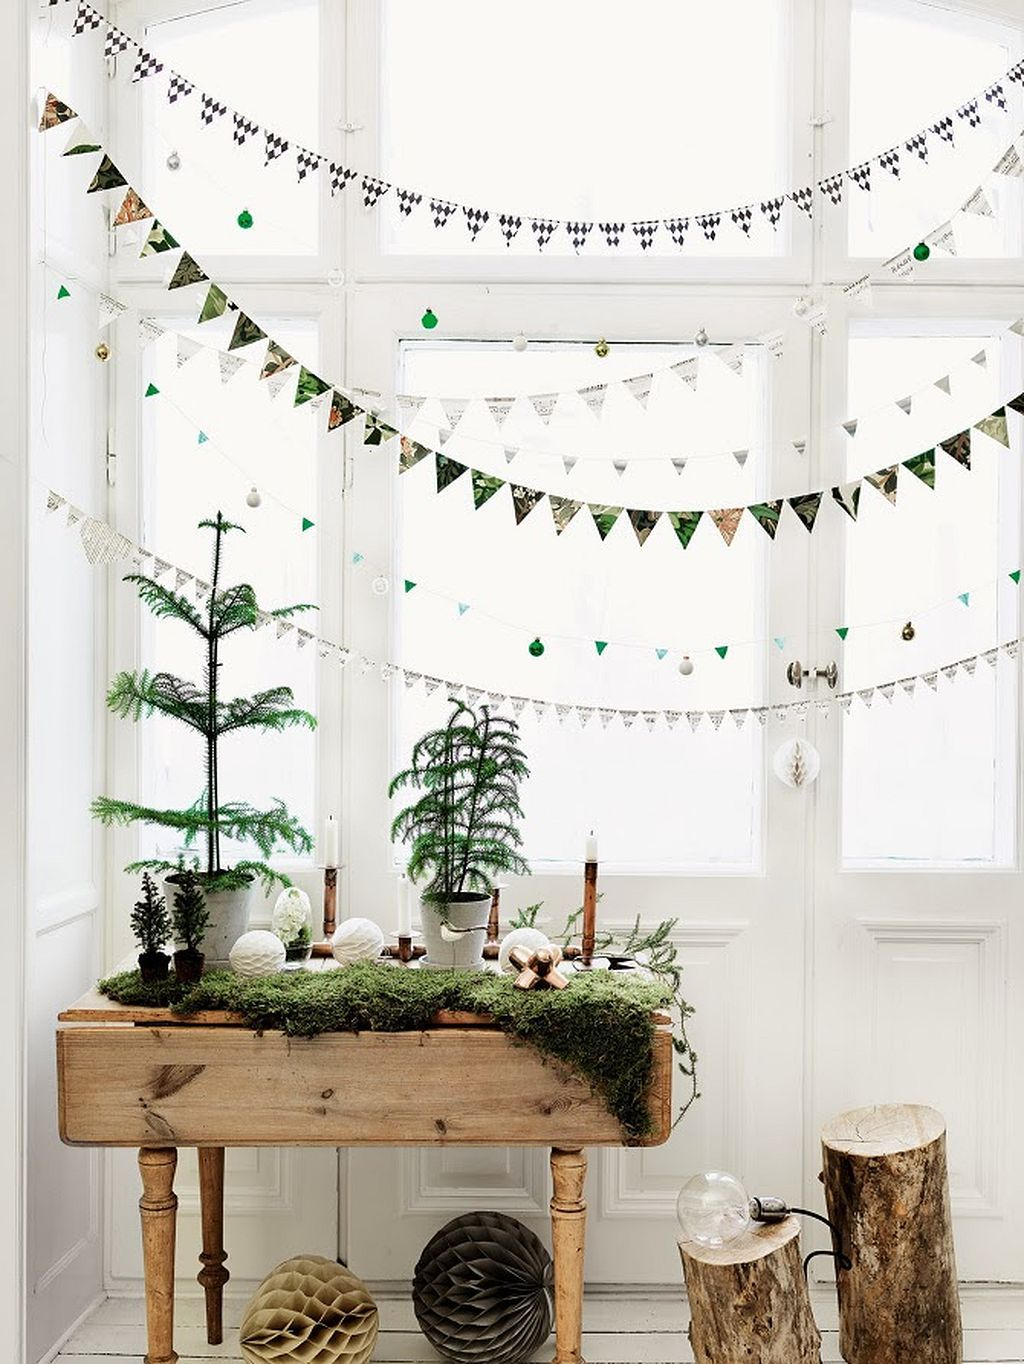 Creative Image Of Beautiful Examples Of Scandinavian Style Christmas Decorations Interior Design Ideas Home Decorating Inspiration Moercar Minimalist Christmas Christmas Inspiration Scandinavian Christmas